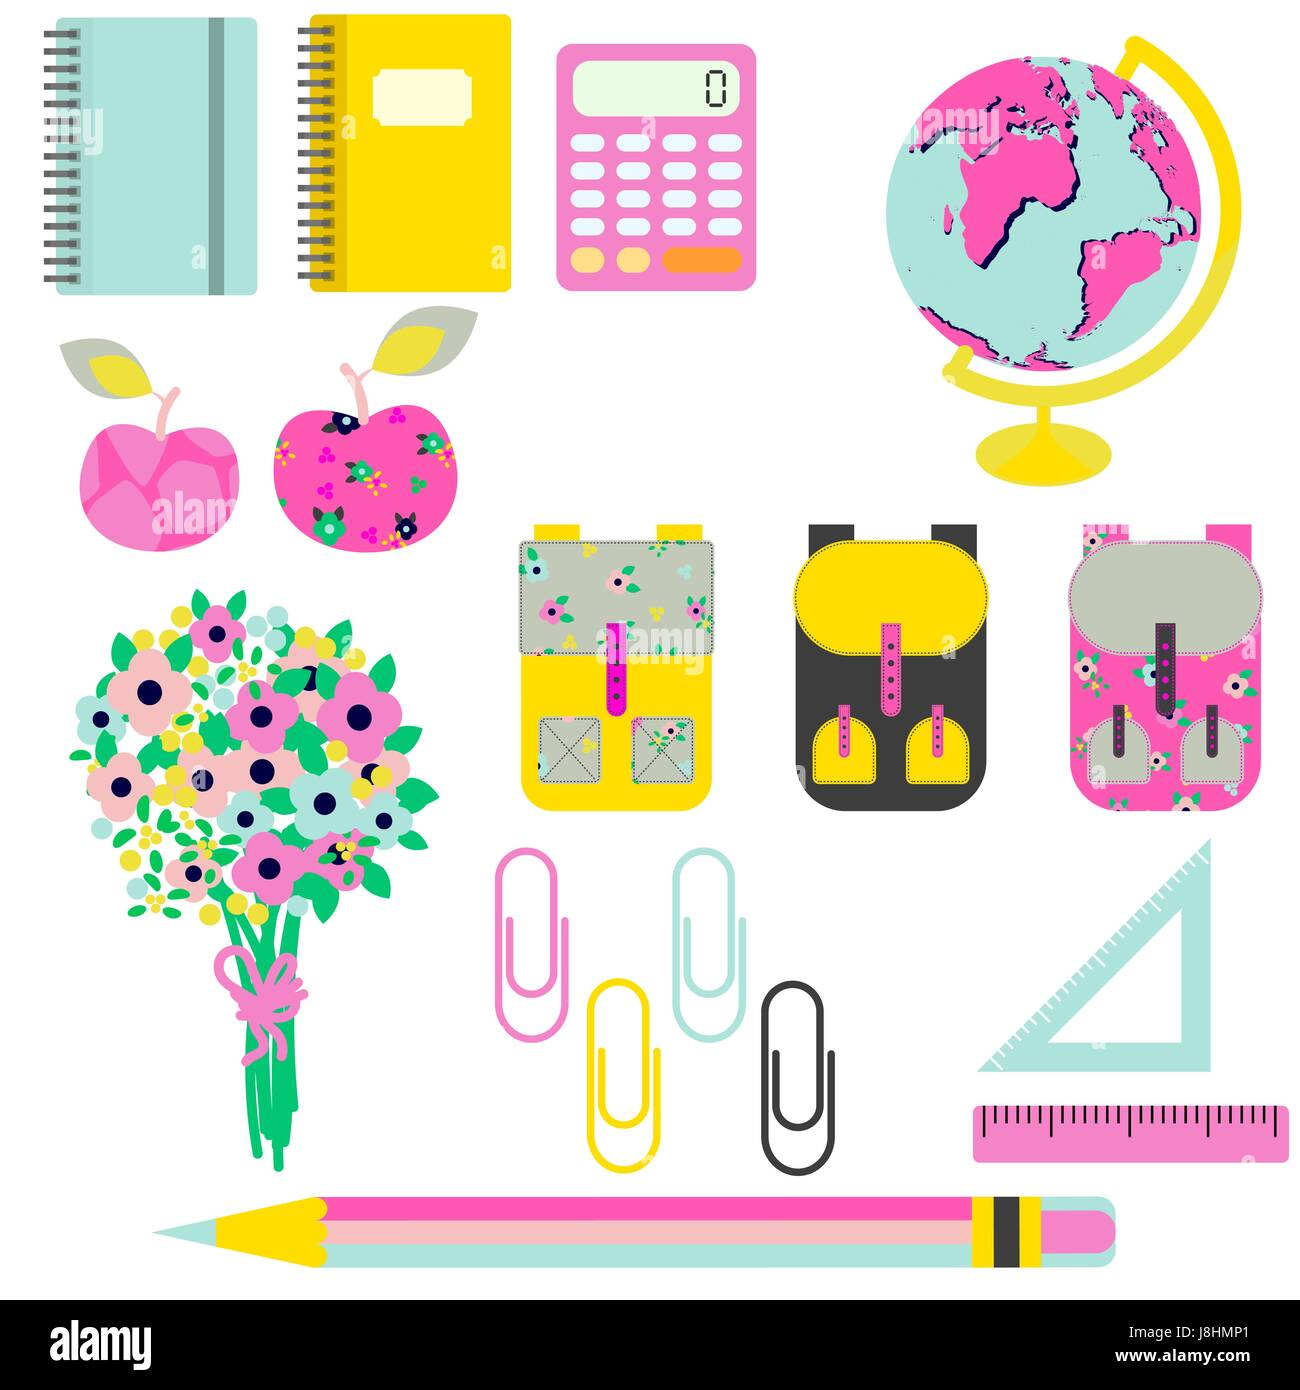 School supplies vector clip art stationery objects. Bright yellow and pink objects for first-grader - flowers, knapsack, - Stock Vector